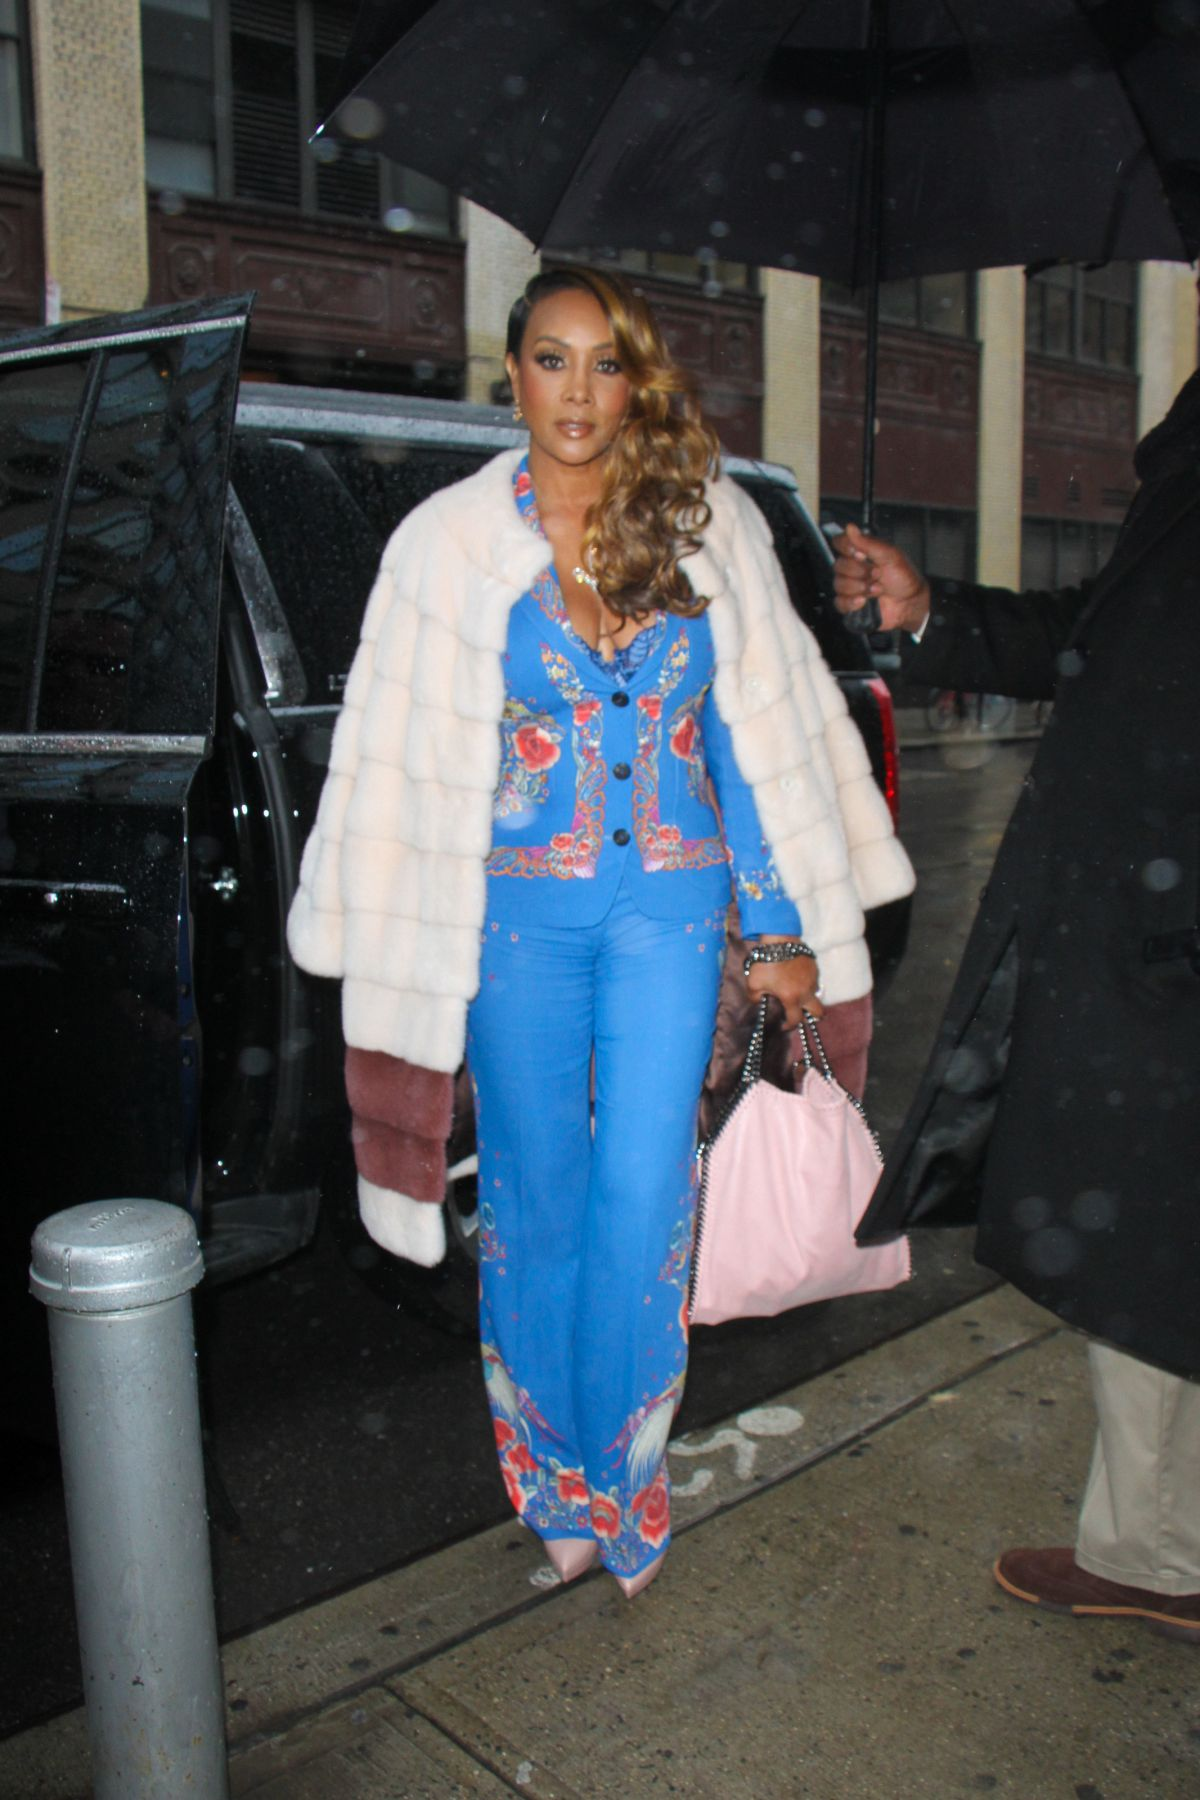 VIVICA FOX Arrives at Wendy Williams Show in New York 01/03/2017   vivica-fox-arrives-at-wendy-williams-show-in-new-york-01-03-2017_6